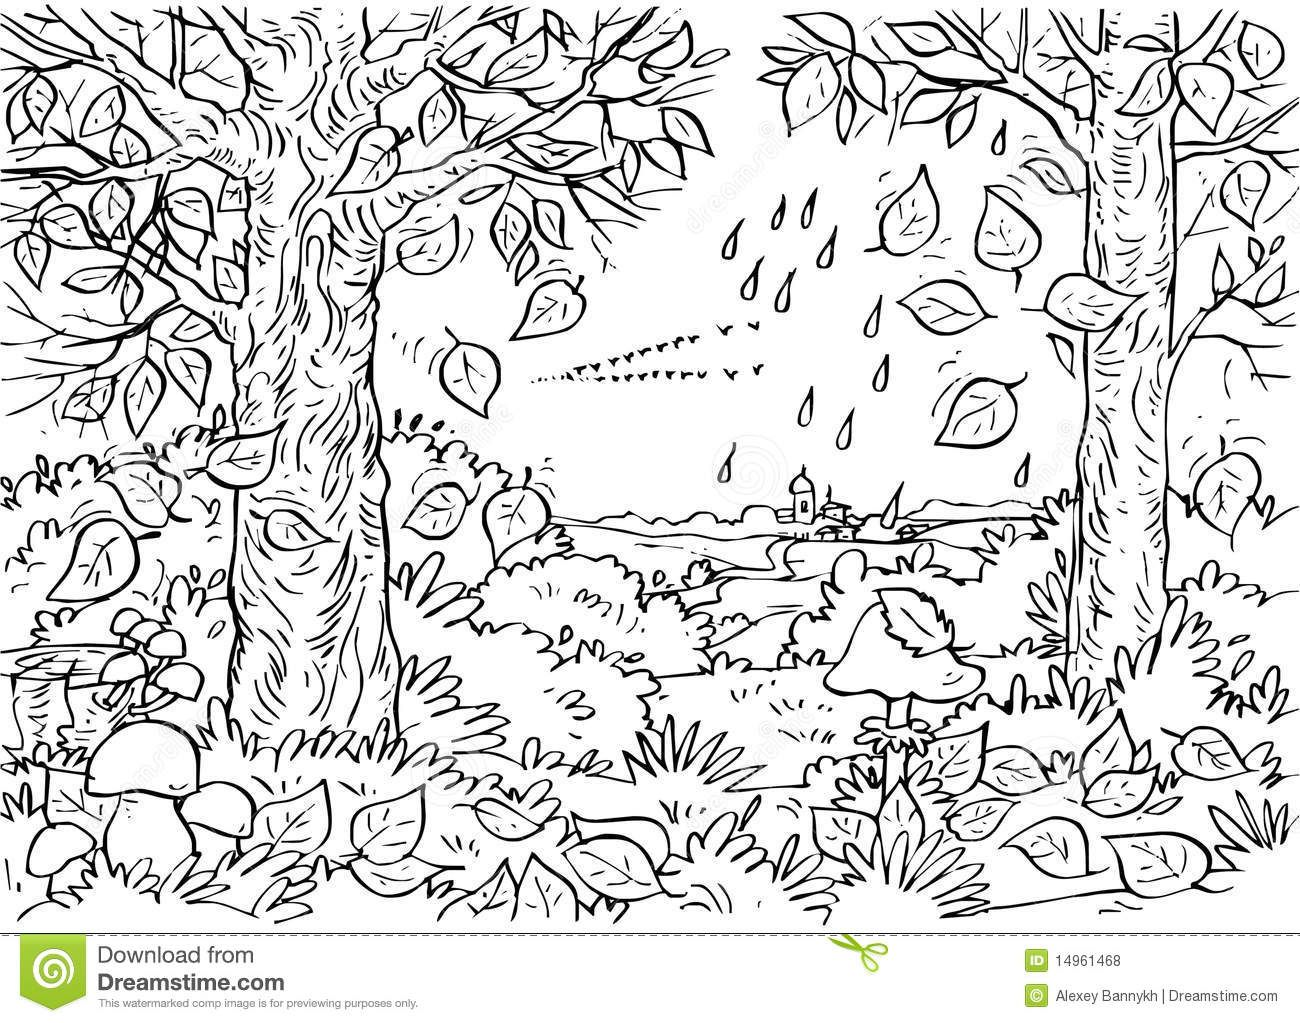 91875 deciduous forest coloring pages jpg 1300 1023 foldables